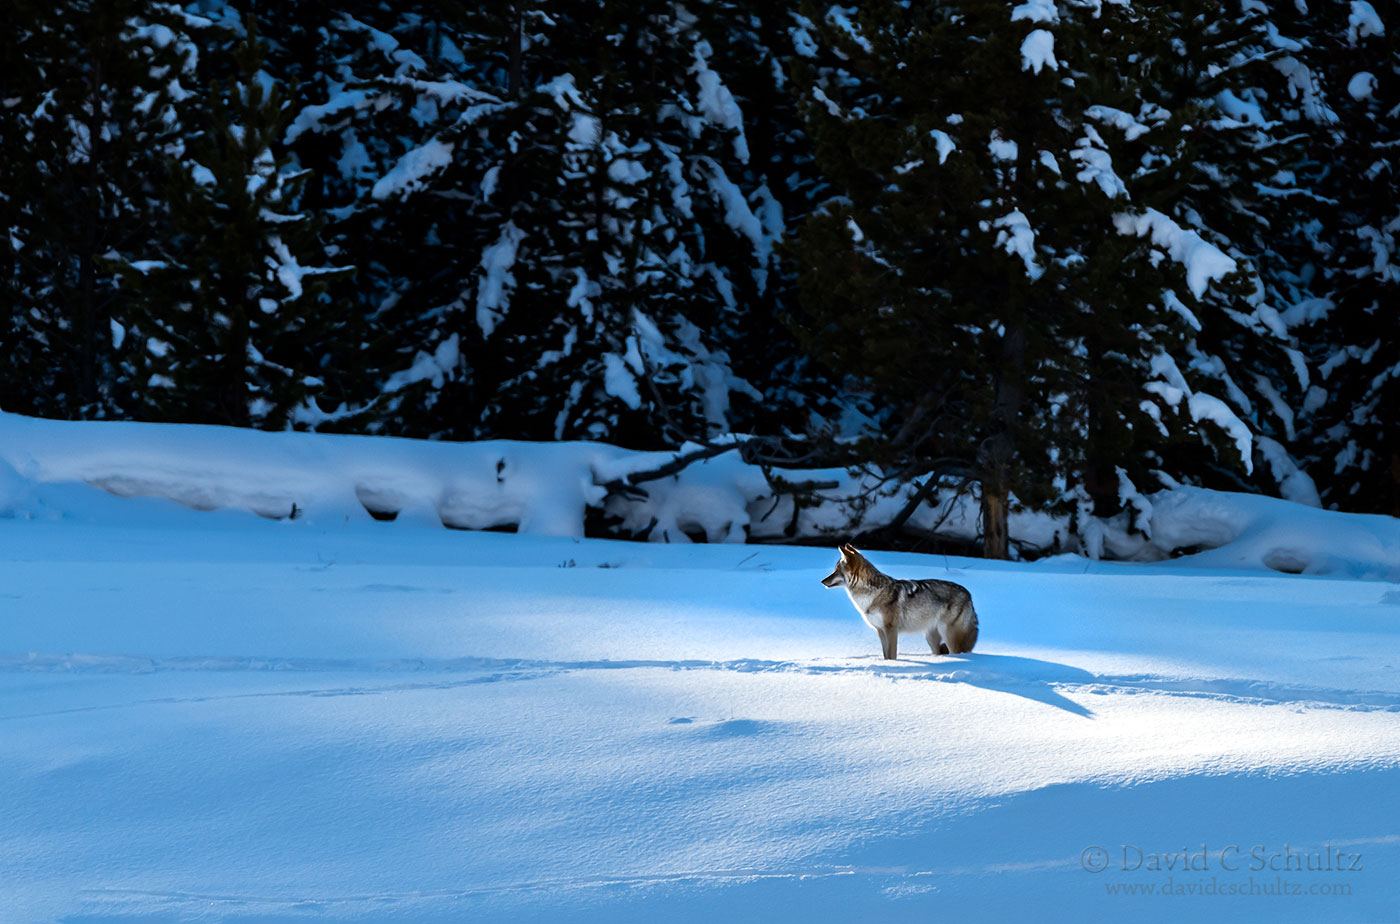 Coyote in Yellowstone - Image #161-6660